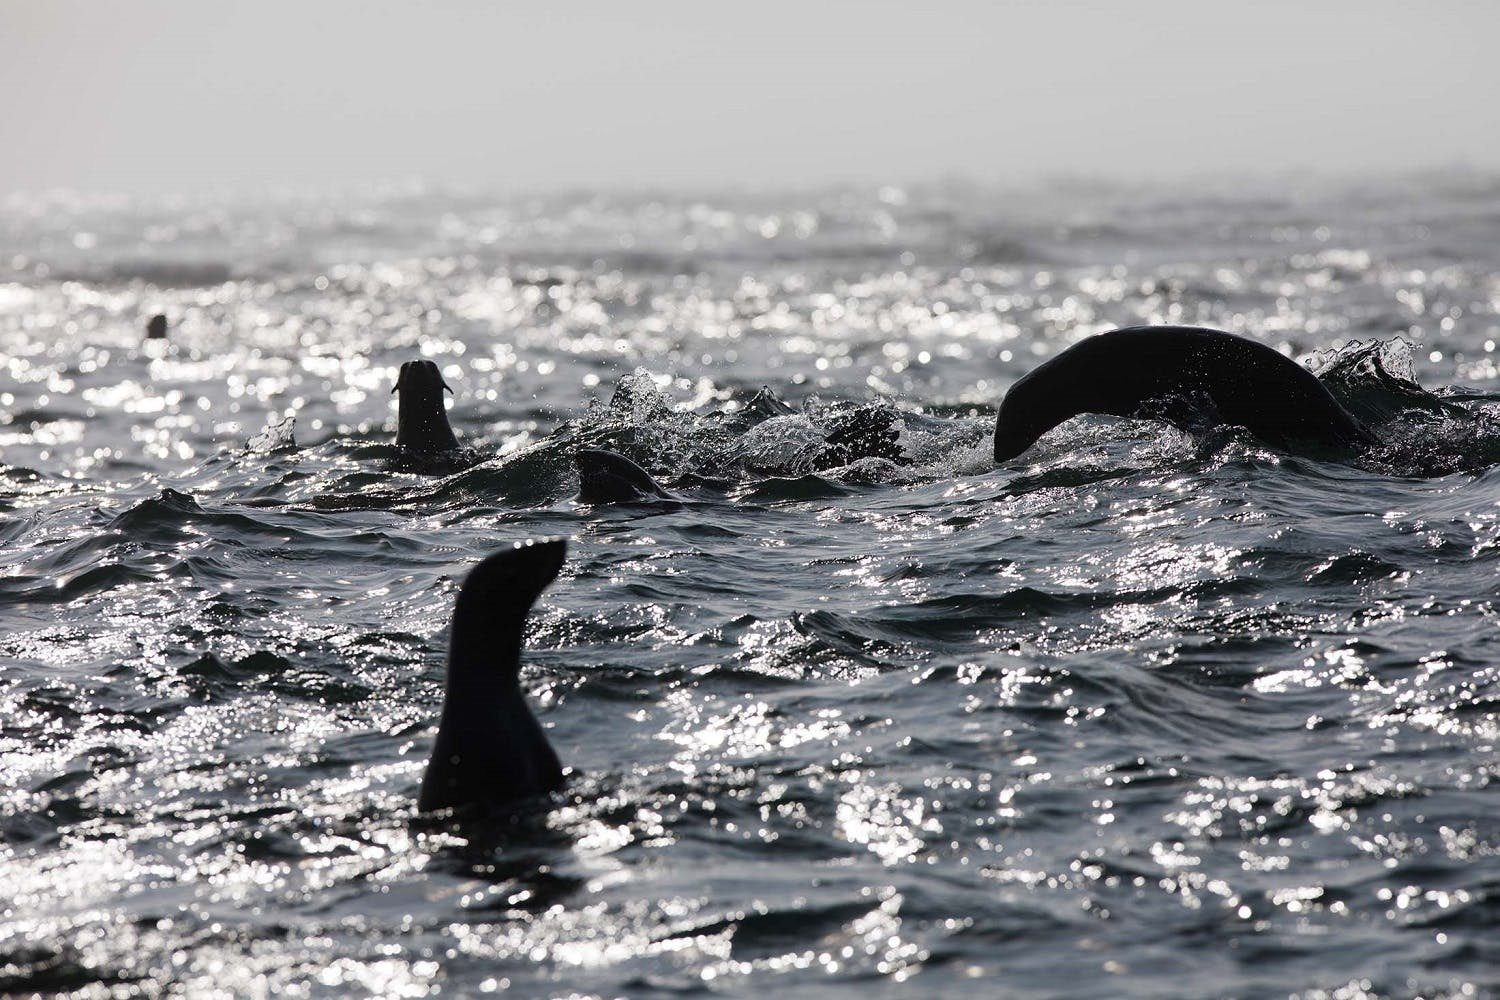 Fur seals in the Russian Far East